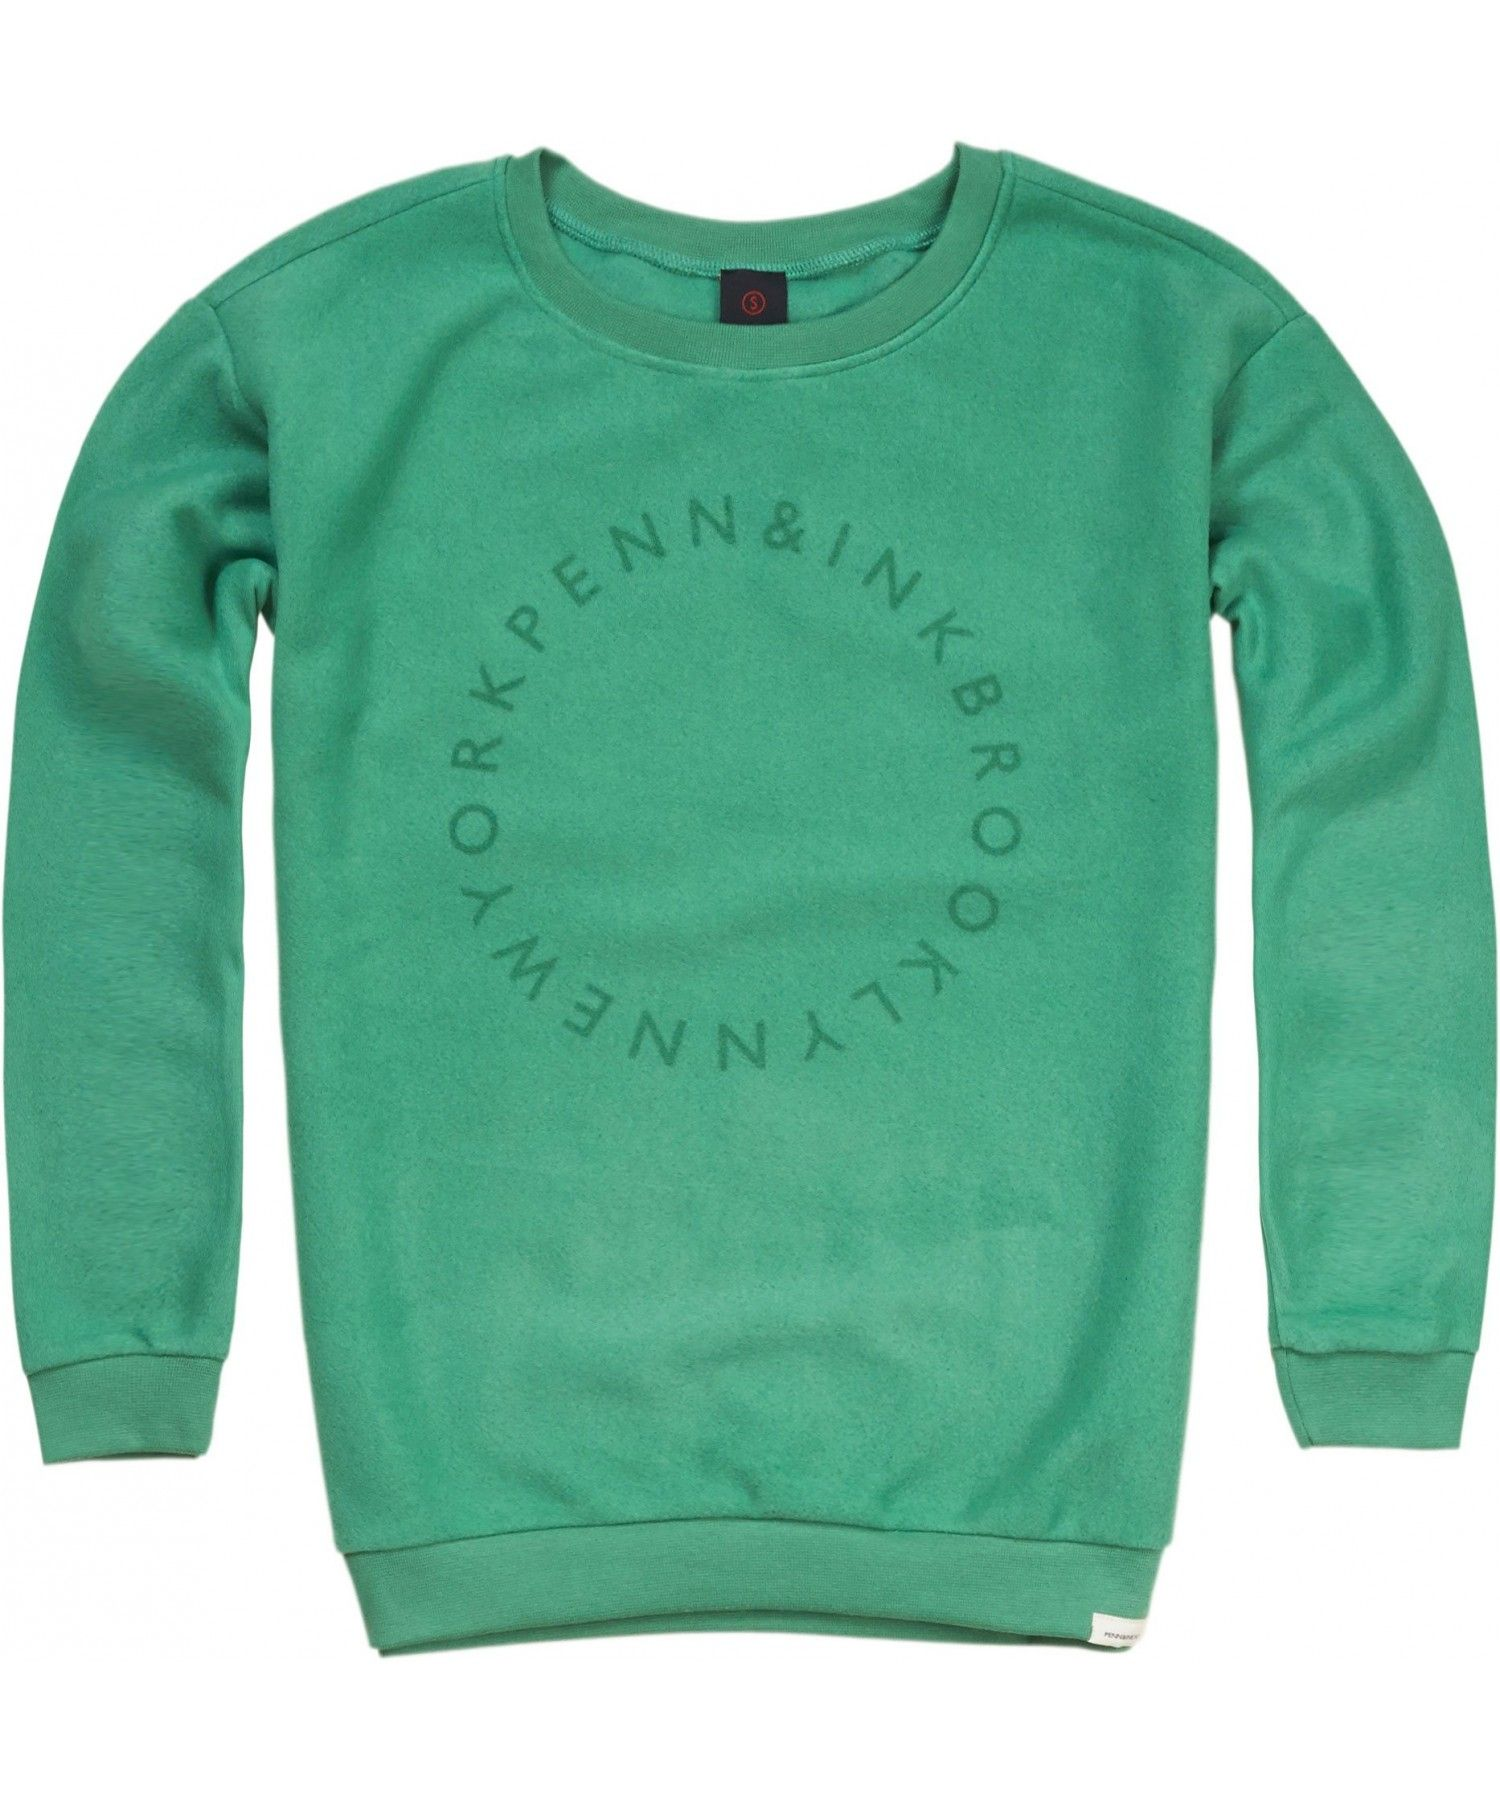 Penn & Ink Sweater Print at Eb&Vloed Lifestyle